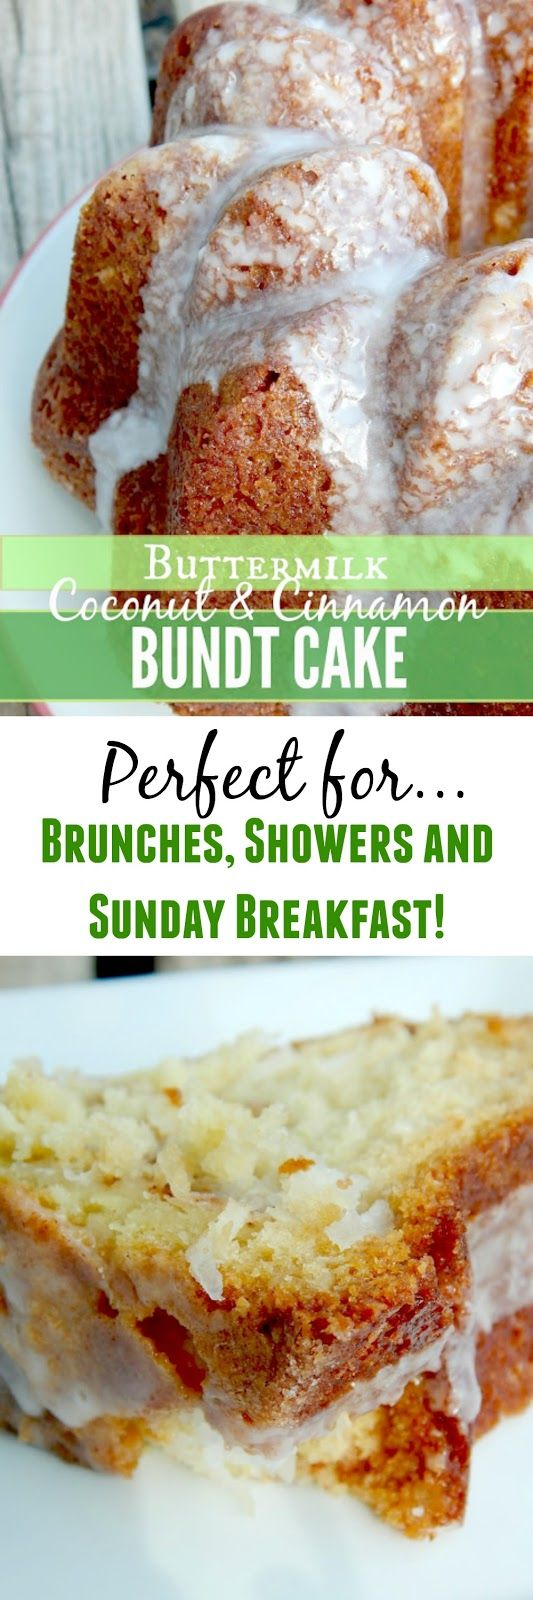 Coconut & Cinnamon Buttermilk Bundt Cake...rich, moist and perfect for brunches, Sunday breakfasts, wedding showers and more!